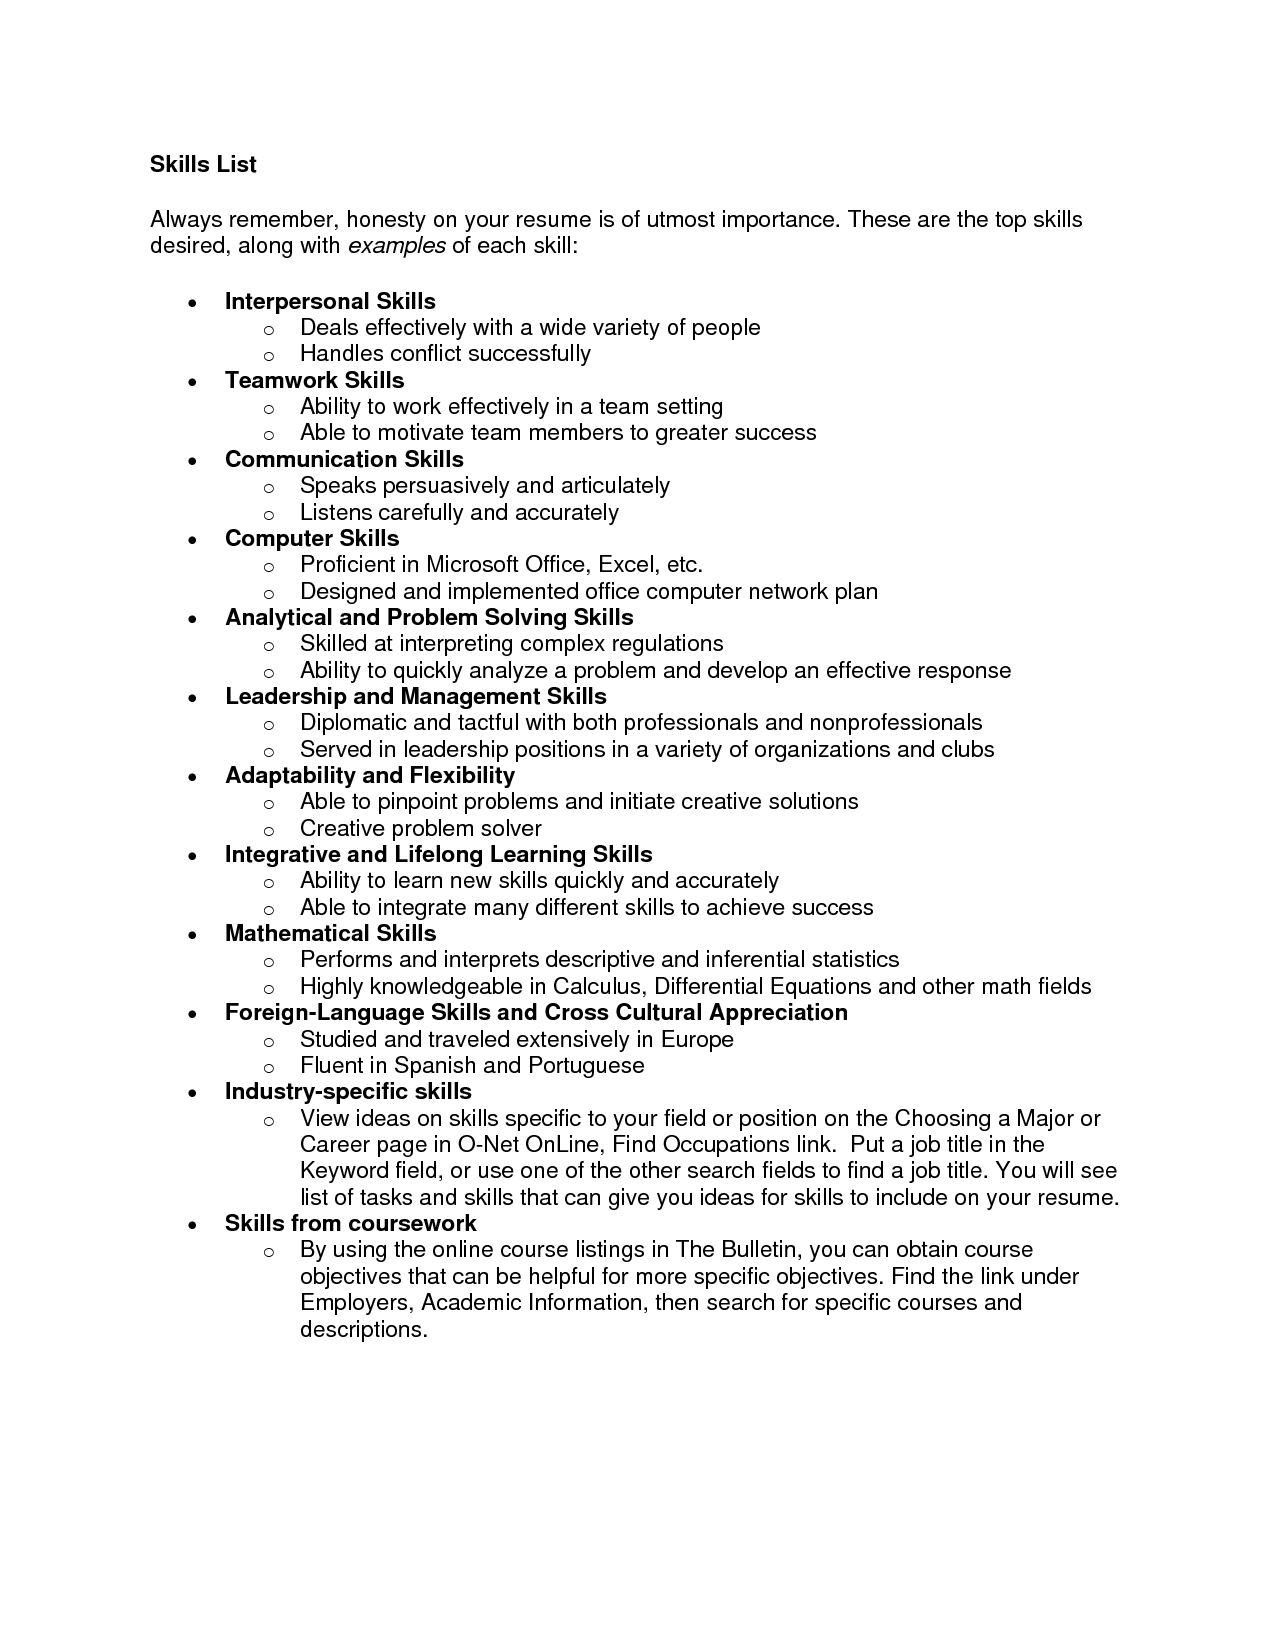 How To Format References On A Resume Resume Additional Skills Examples Sample Hard Information And